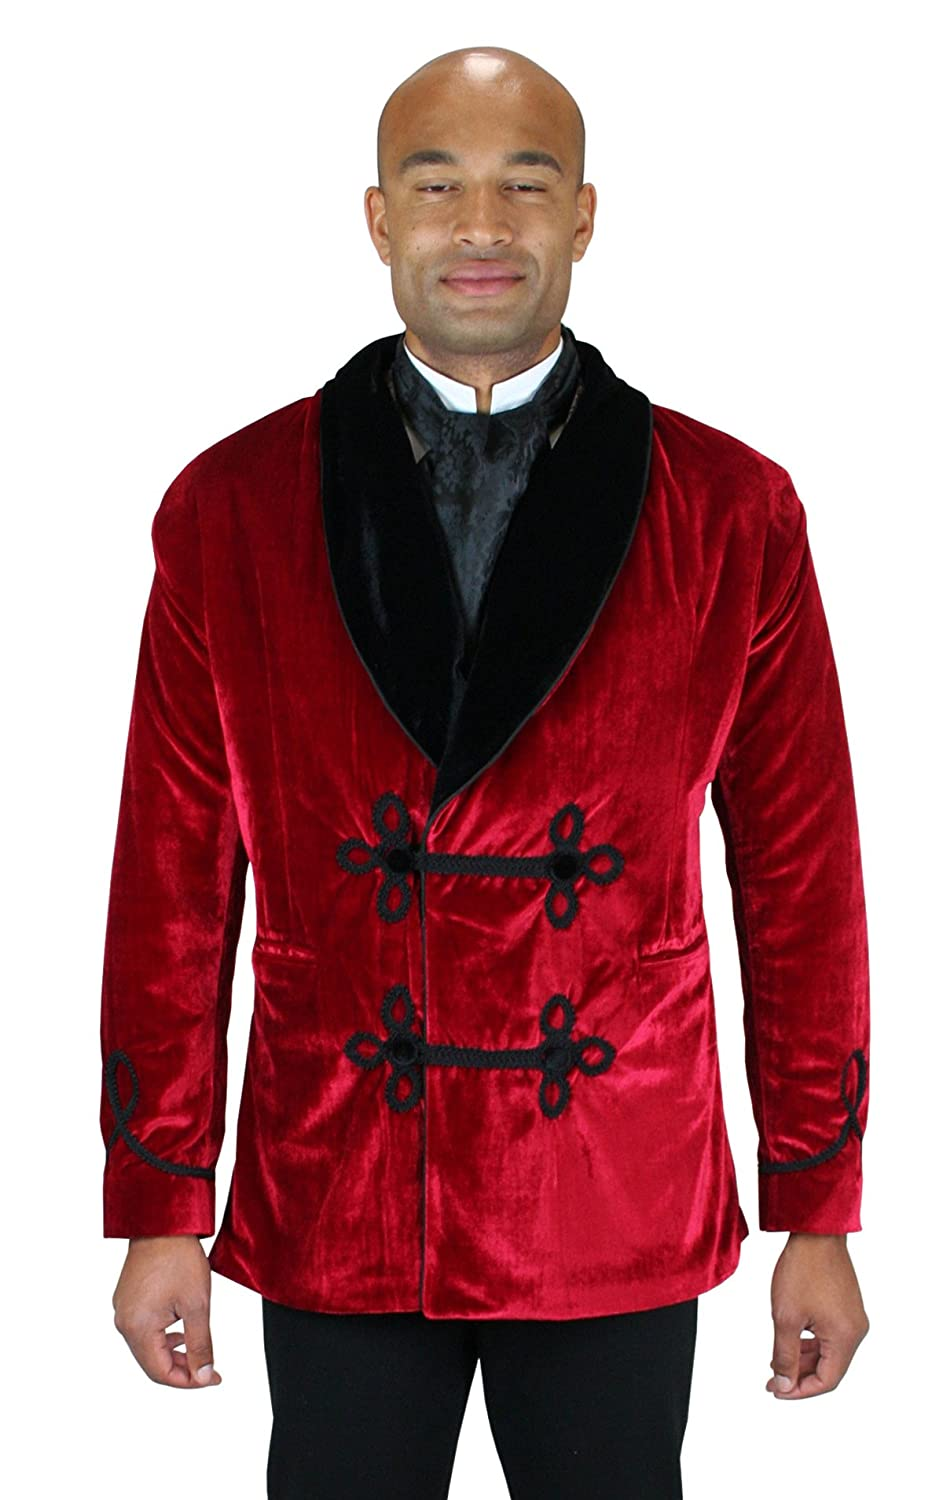 Men's 1900s Costumes: Indiana Jones, WW1 Pilot, Safari Costumes Vintage Velvet Smoking Jacket $129.95 AT vintagedancer.com